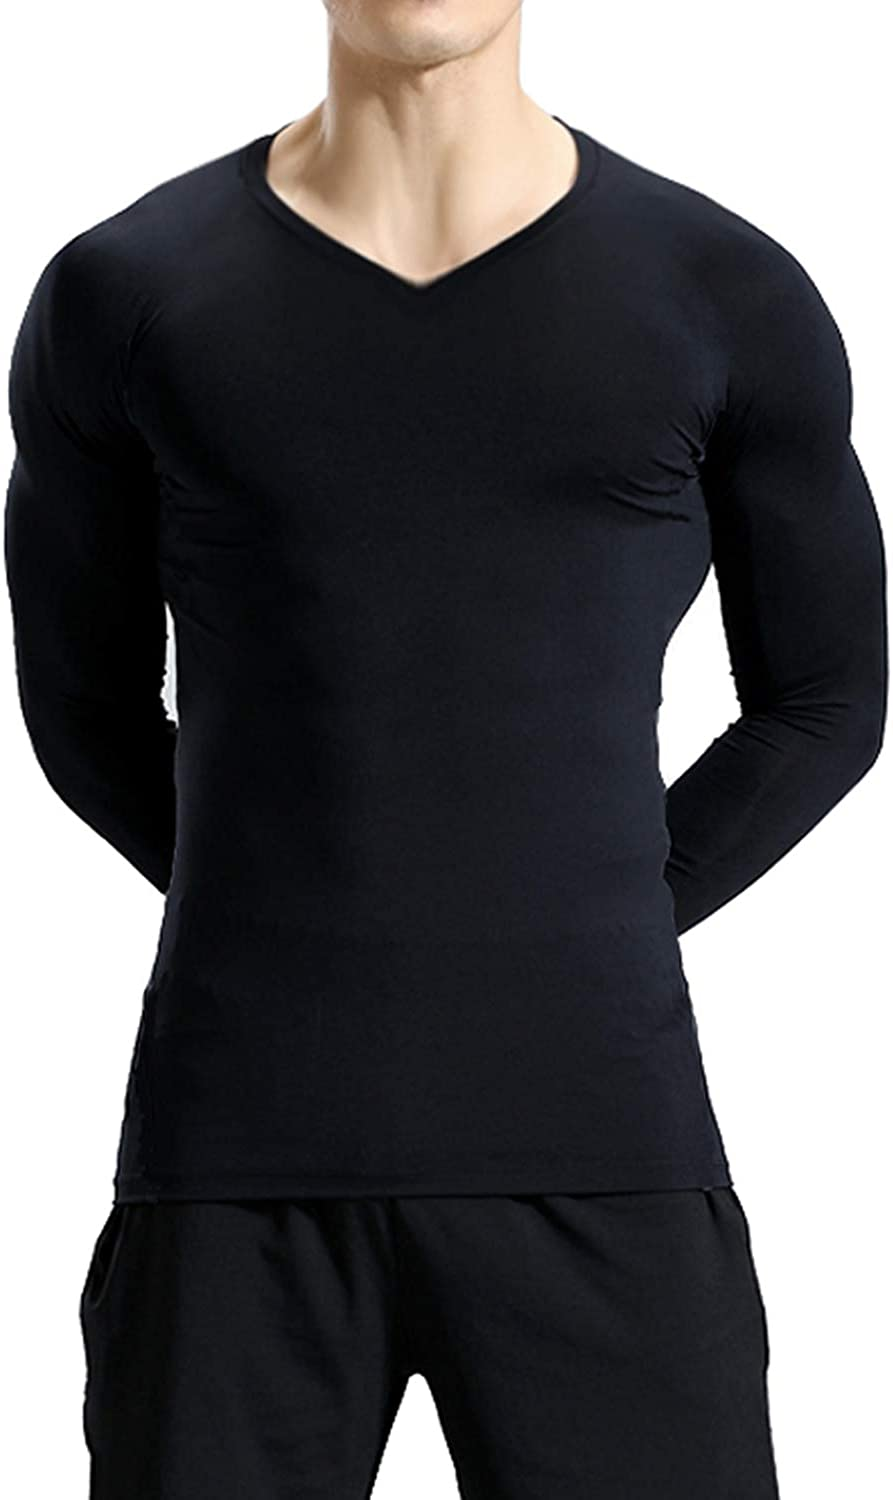 Lavento Mens 3 Pack Compression Shirts Baselayer Long Sleeve Dry Fit Undershirts